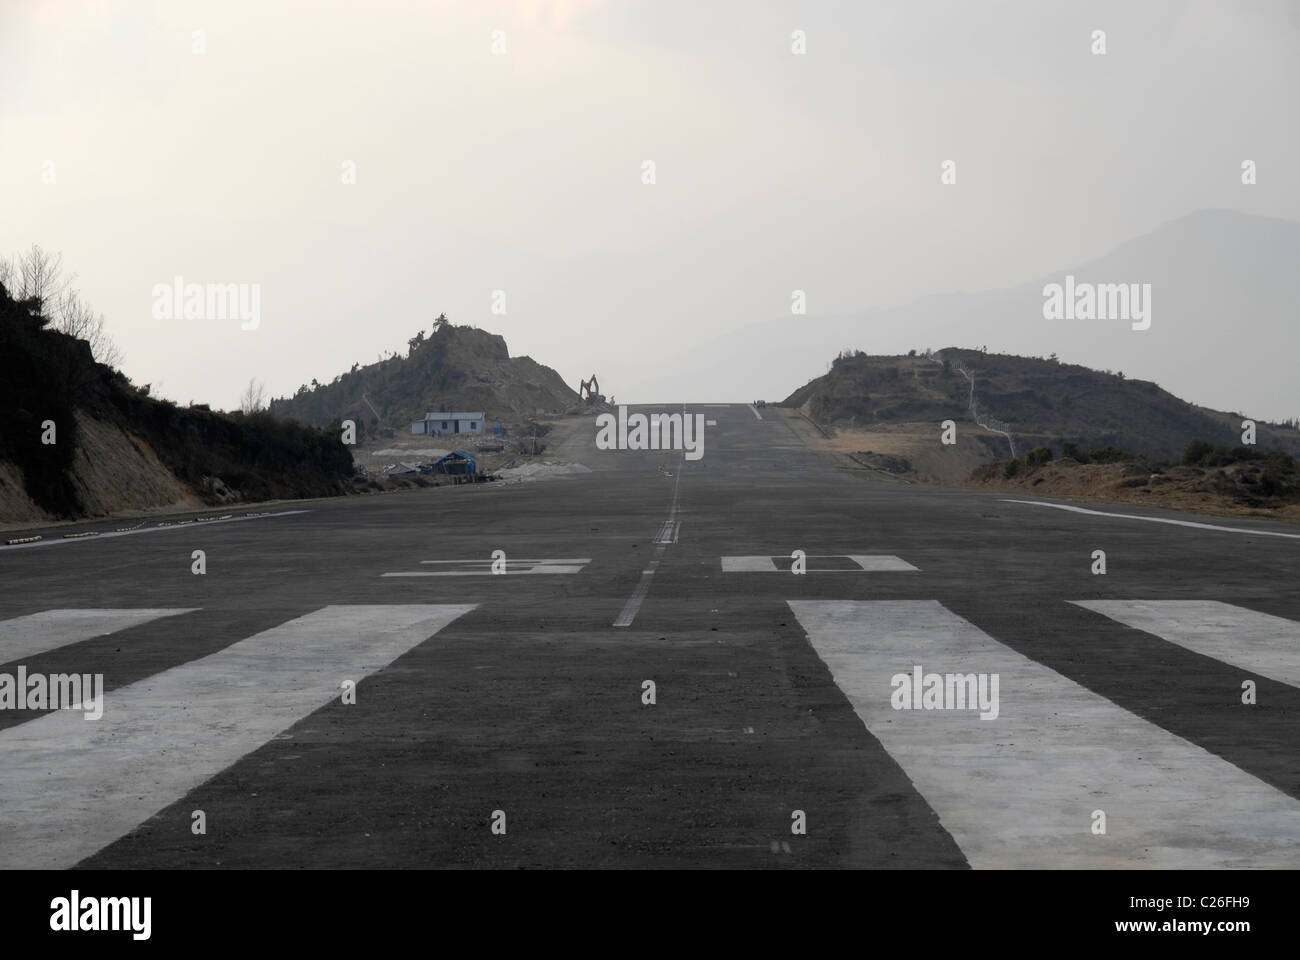 Construction work at the new Runway / Airport above Trashigang, East Bhutan - Stock Image